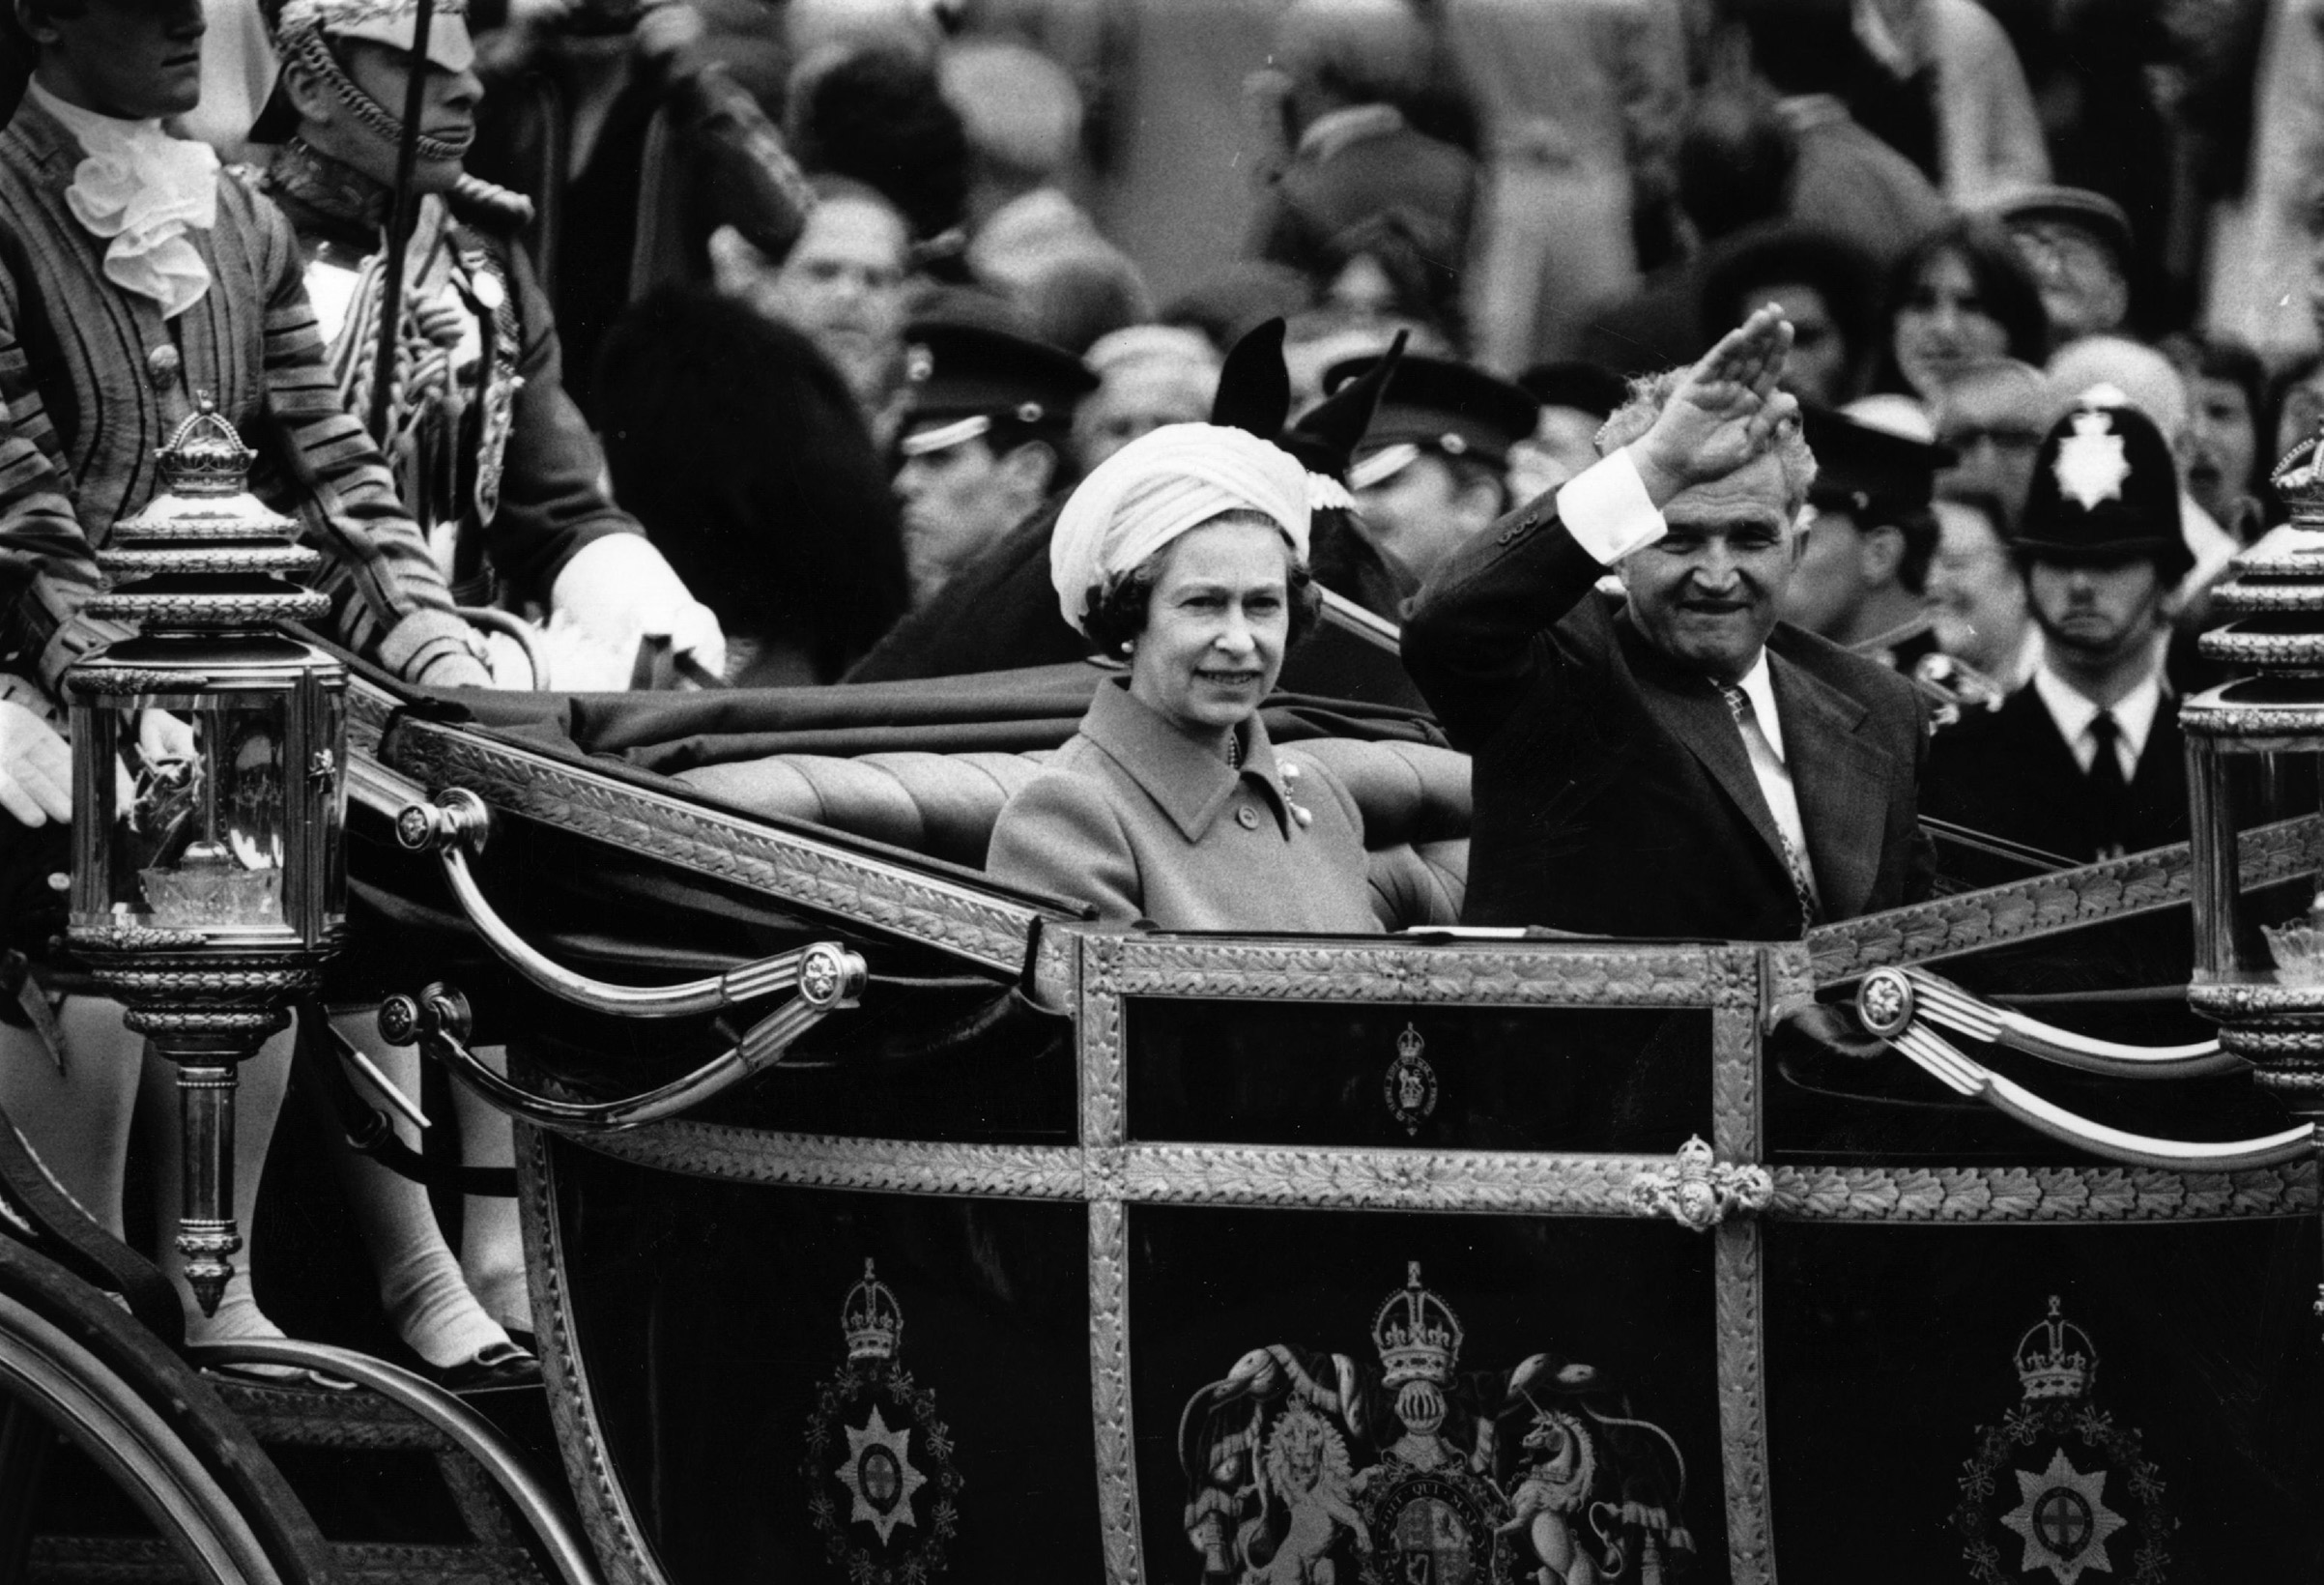 Romanian dictator Nicolae Ceausescu rides in the state carriage with Queen Elizabeth II on his official visit to Britain on June 13, 1978.